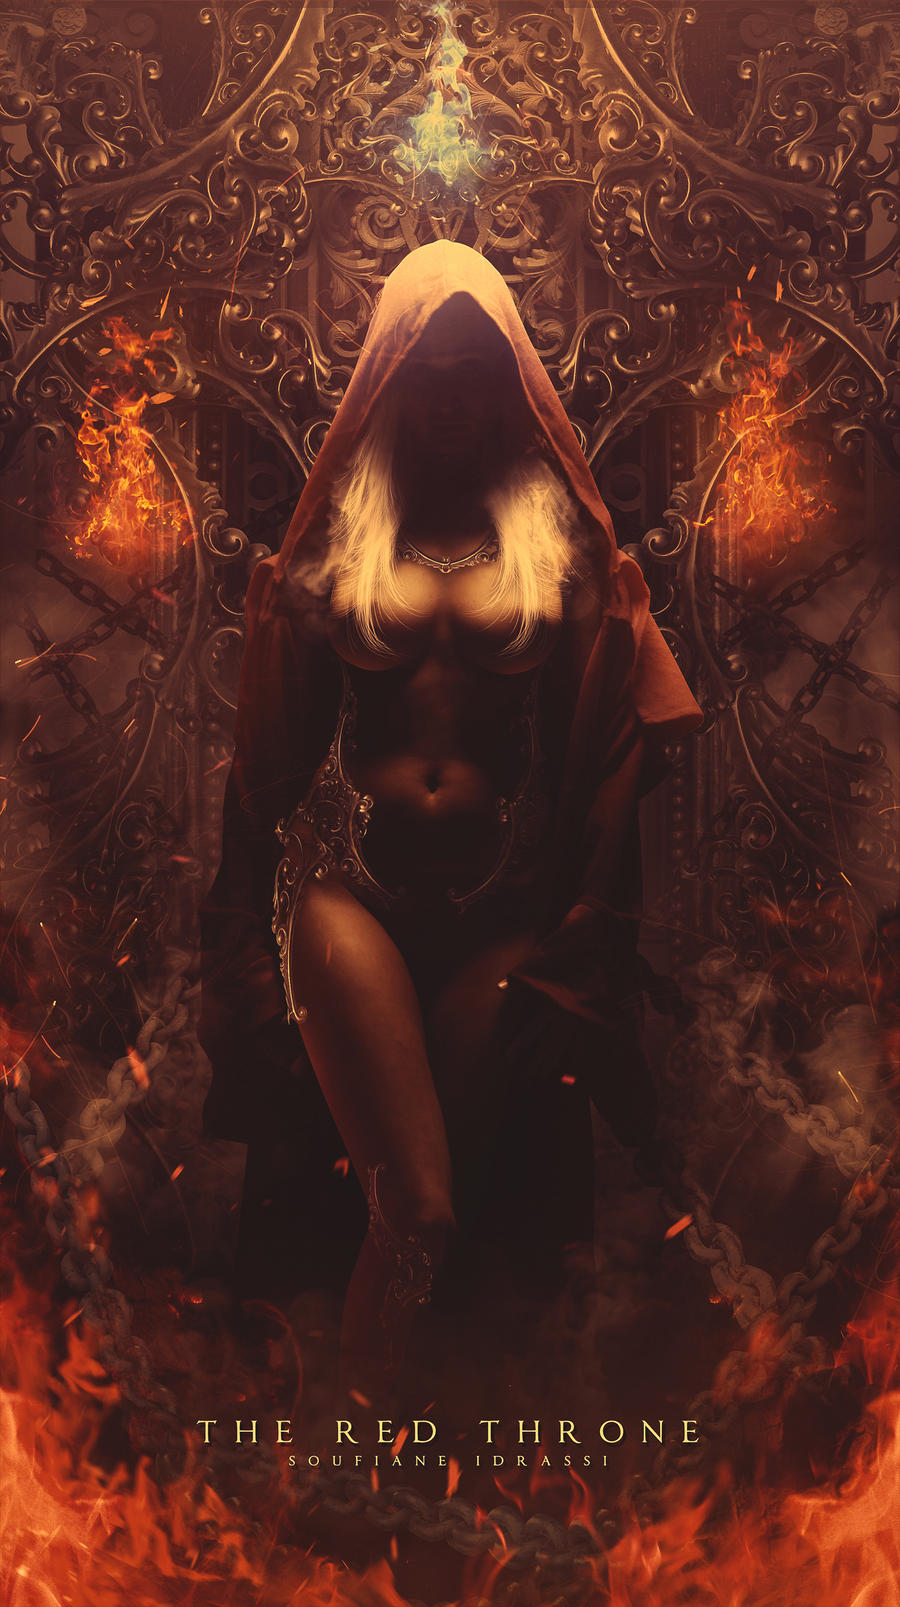 The Red Throne by CGSoufiane